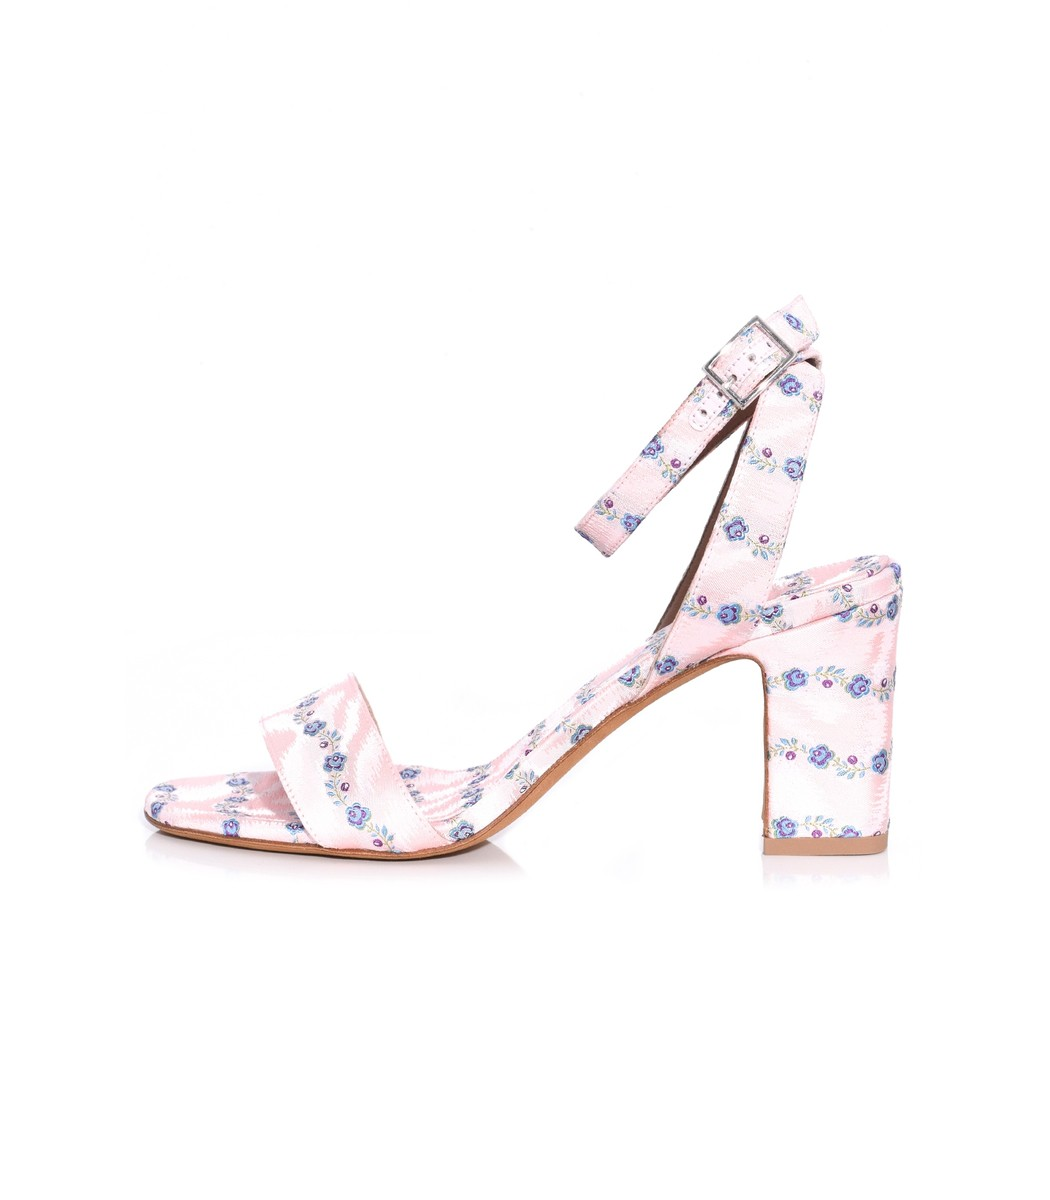 Tabitha Simmons Shoes Leticia Heel in Light Pink Striped Jacquard